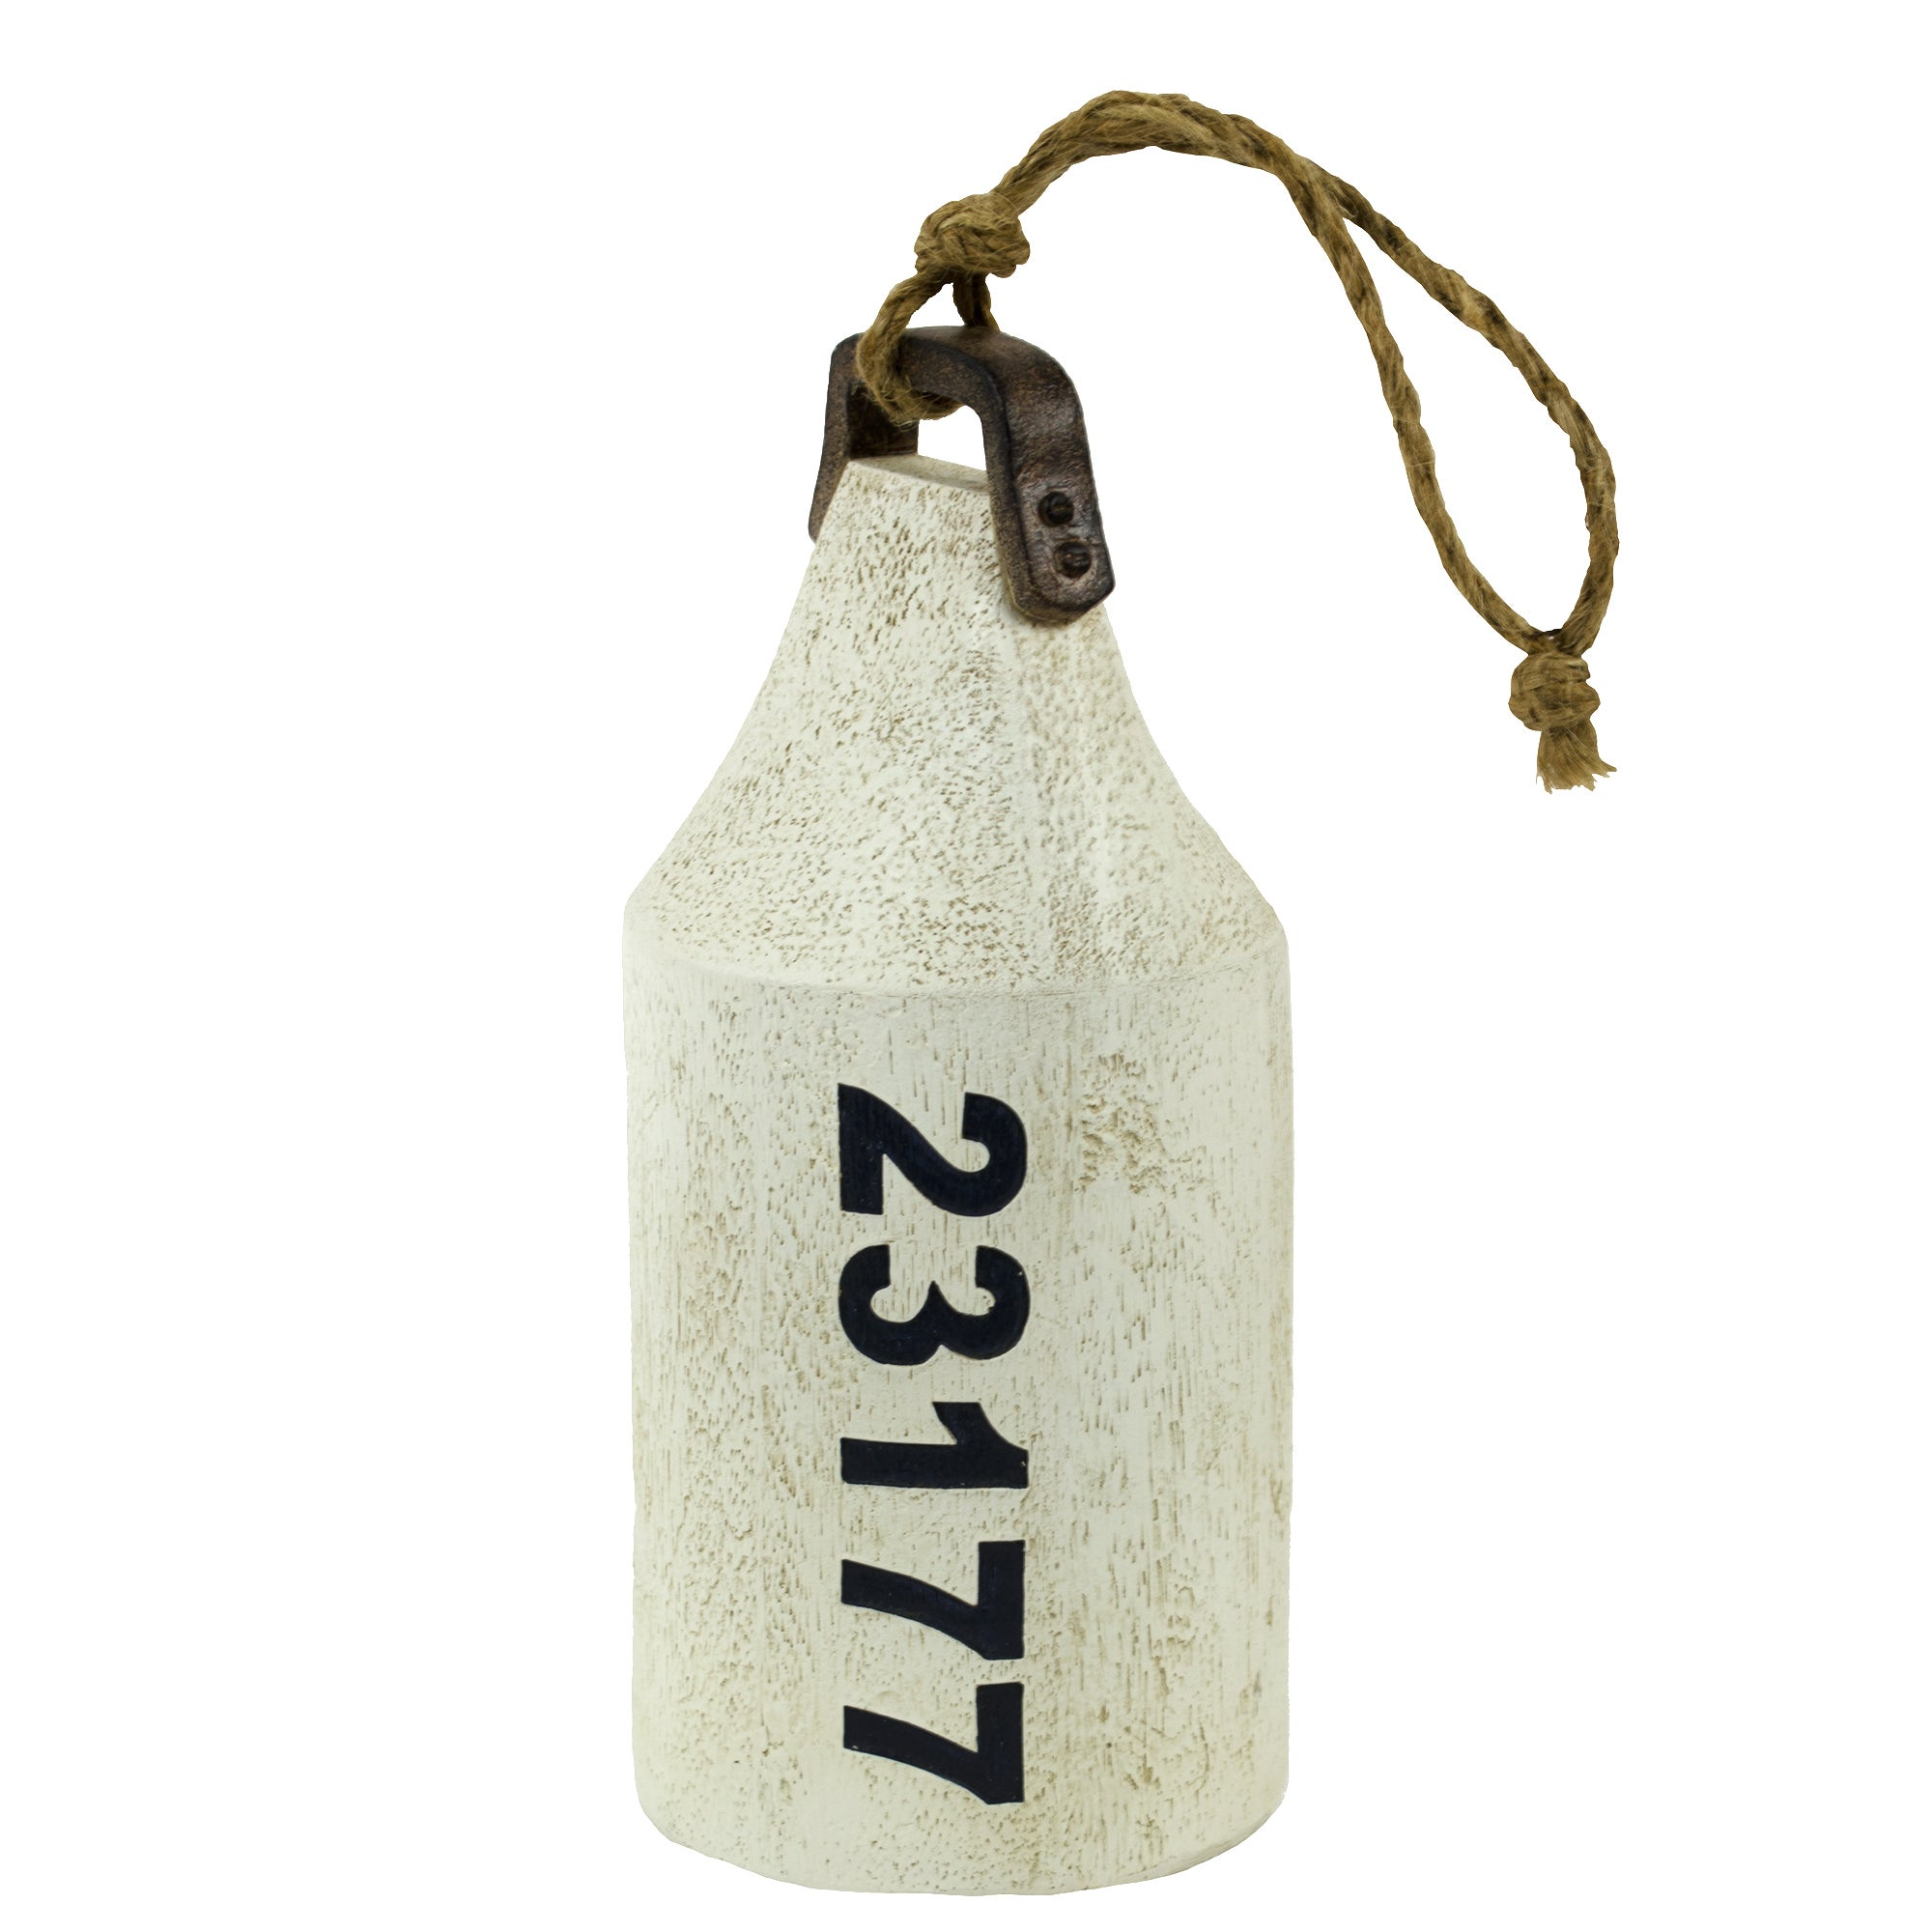 Hamptons Collection Buoy Doorstop